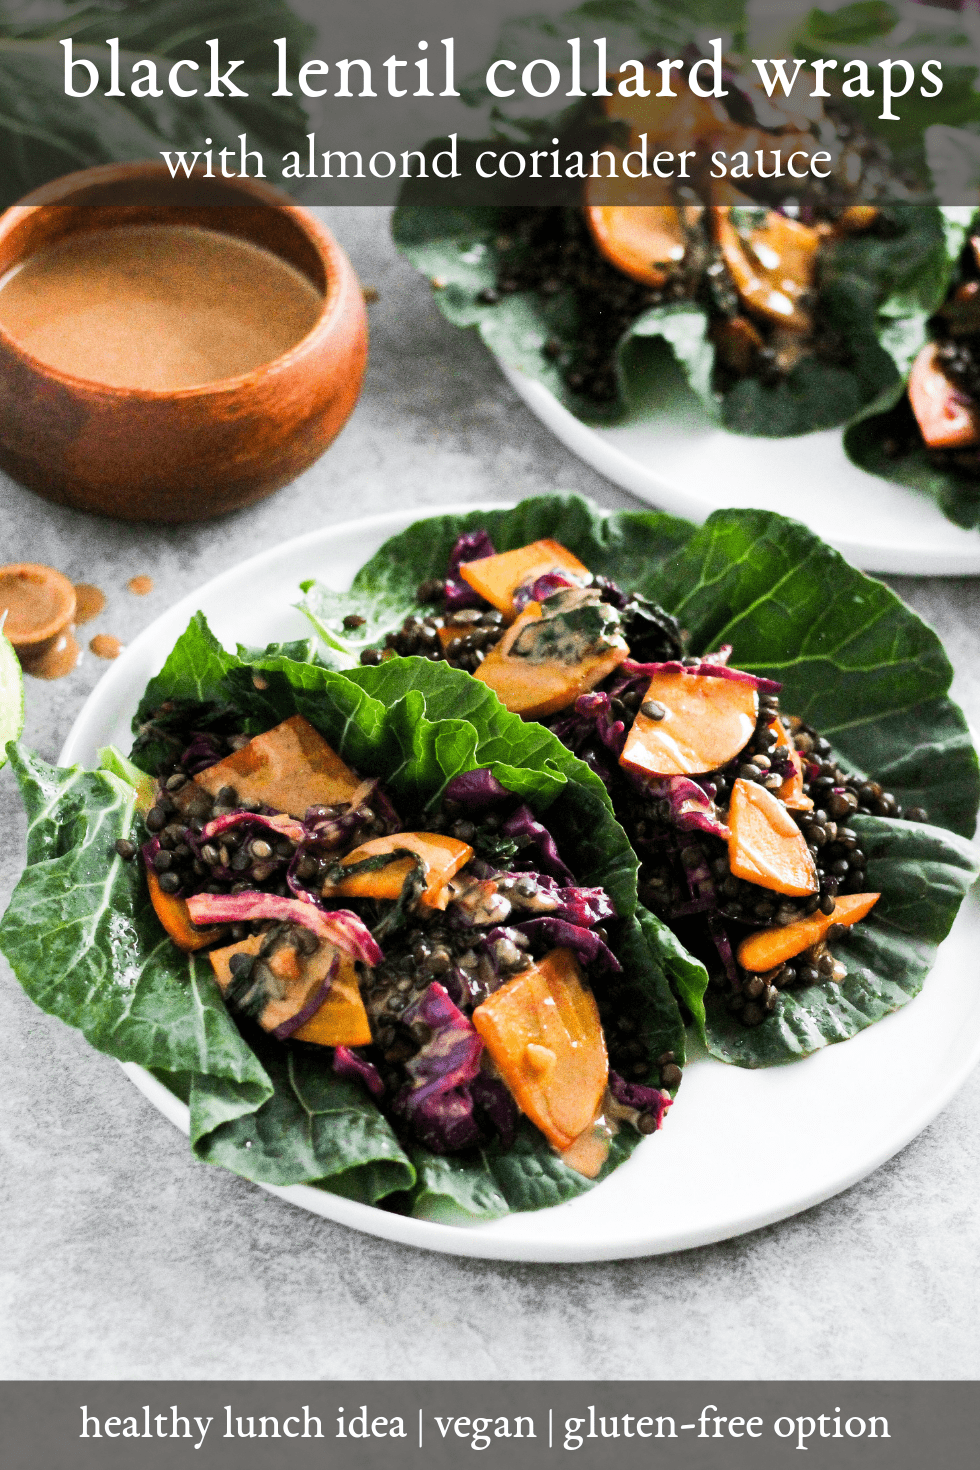 Black Lentil Collard Wraps are a healthy, plant-based lunch idea. This recipe uses a golden beet with the beet greens to help reduce food waste! #GratefulGrazer #plantbased #lowwaste #sustainablefood #healthylunch #ecofriendly